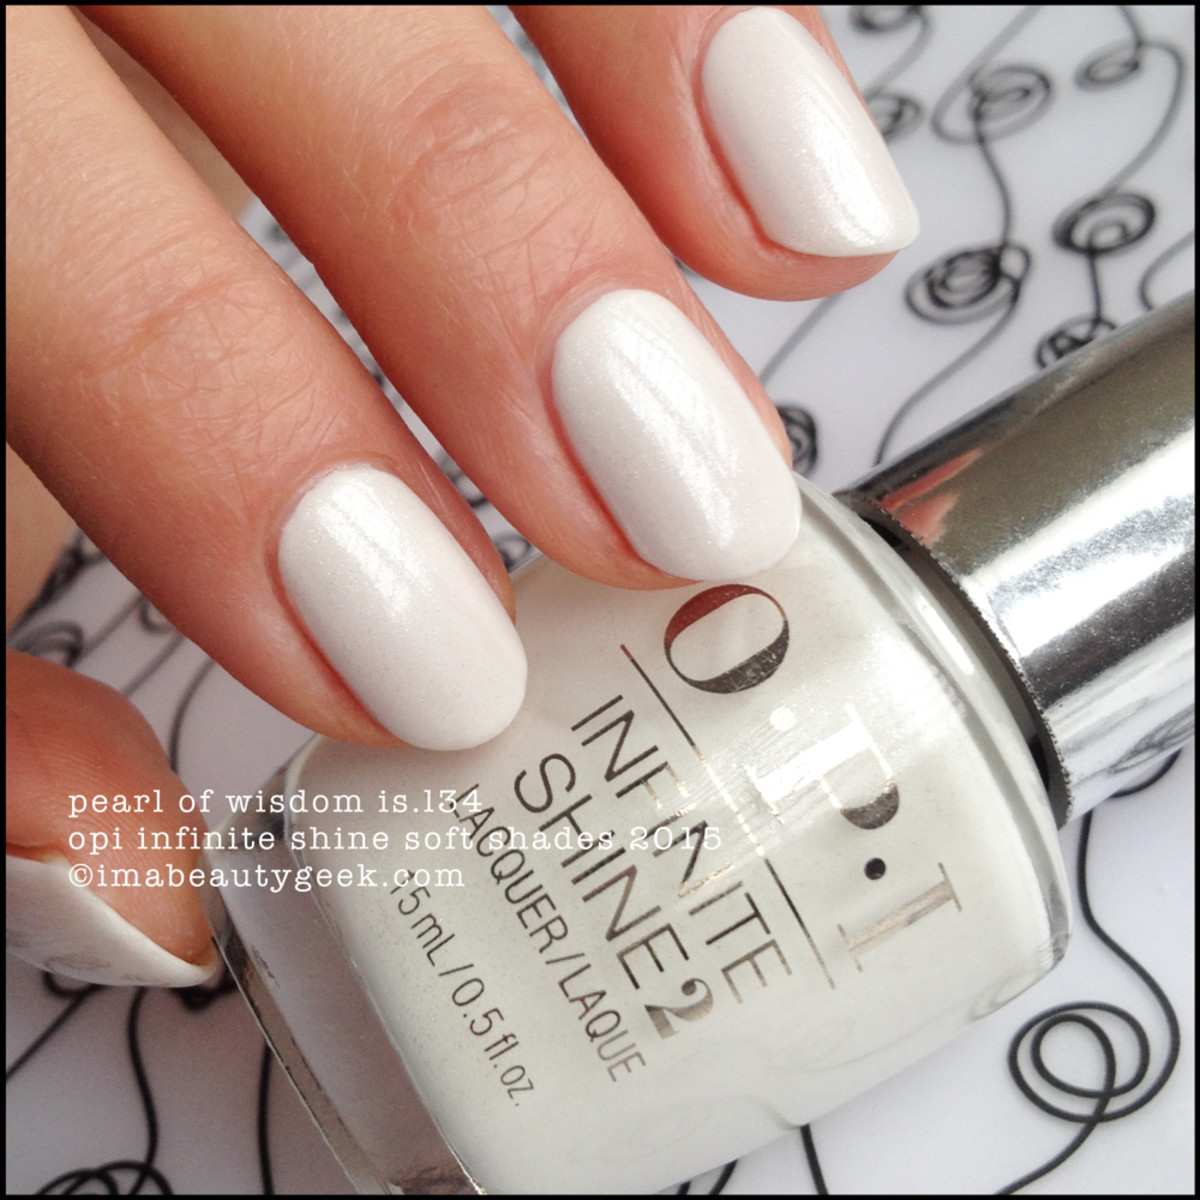 OPI Infinite Shine Pearl of Wisdom OPI Soft Shades 2015